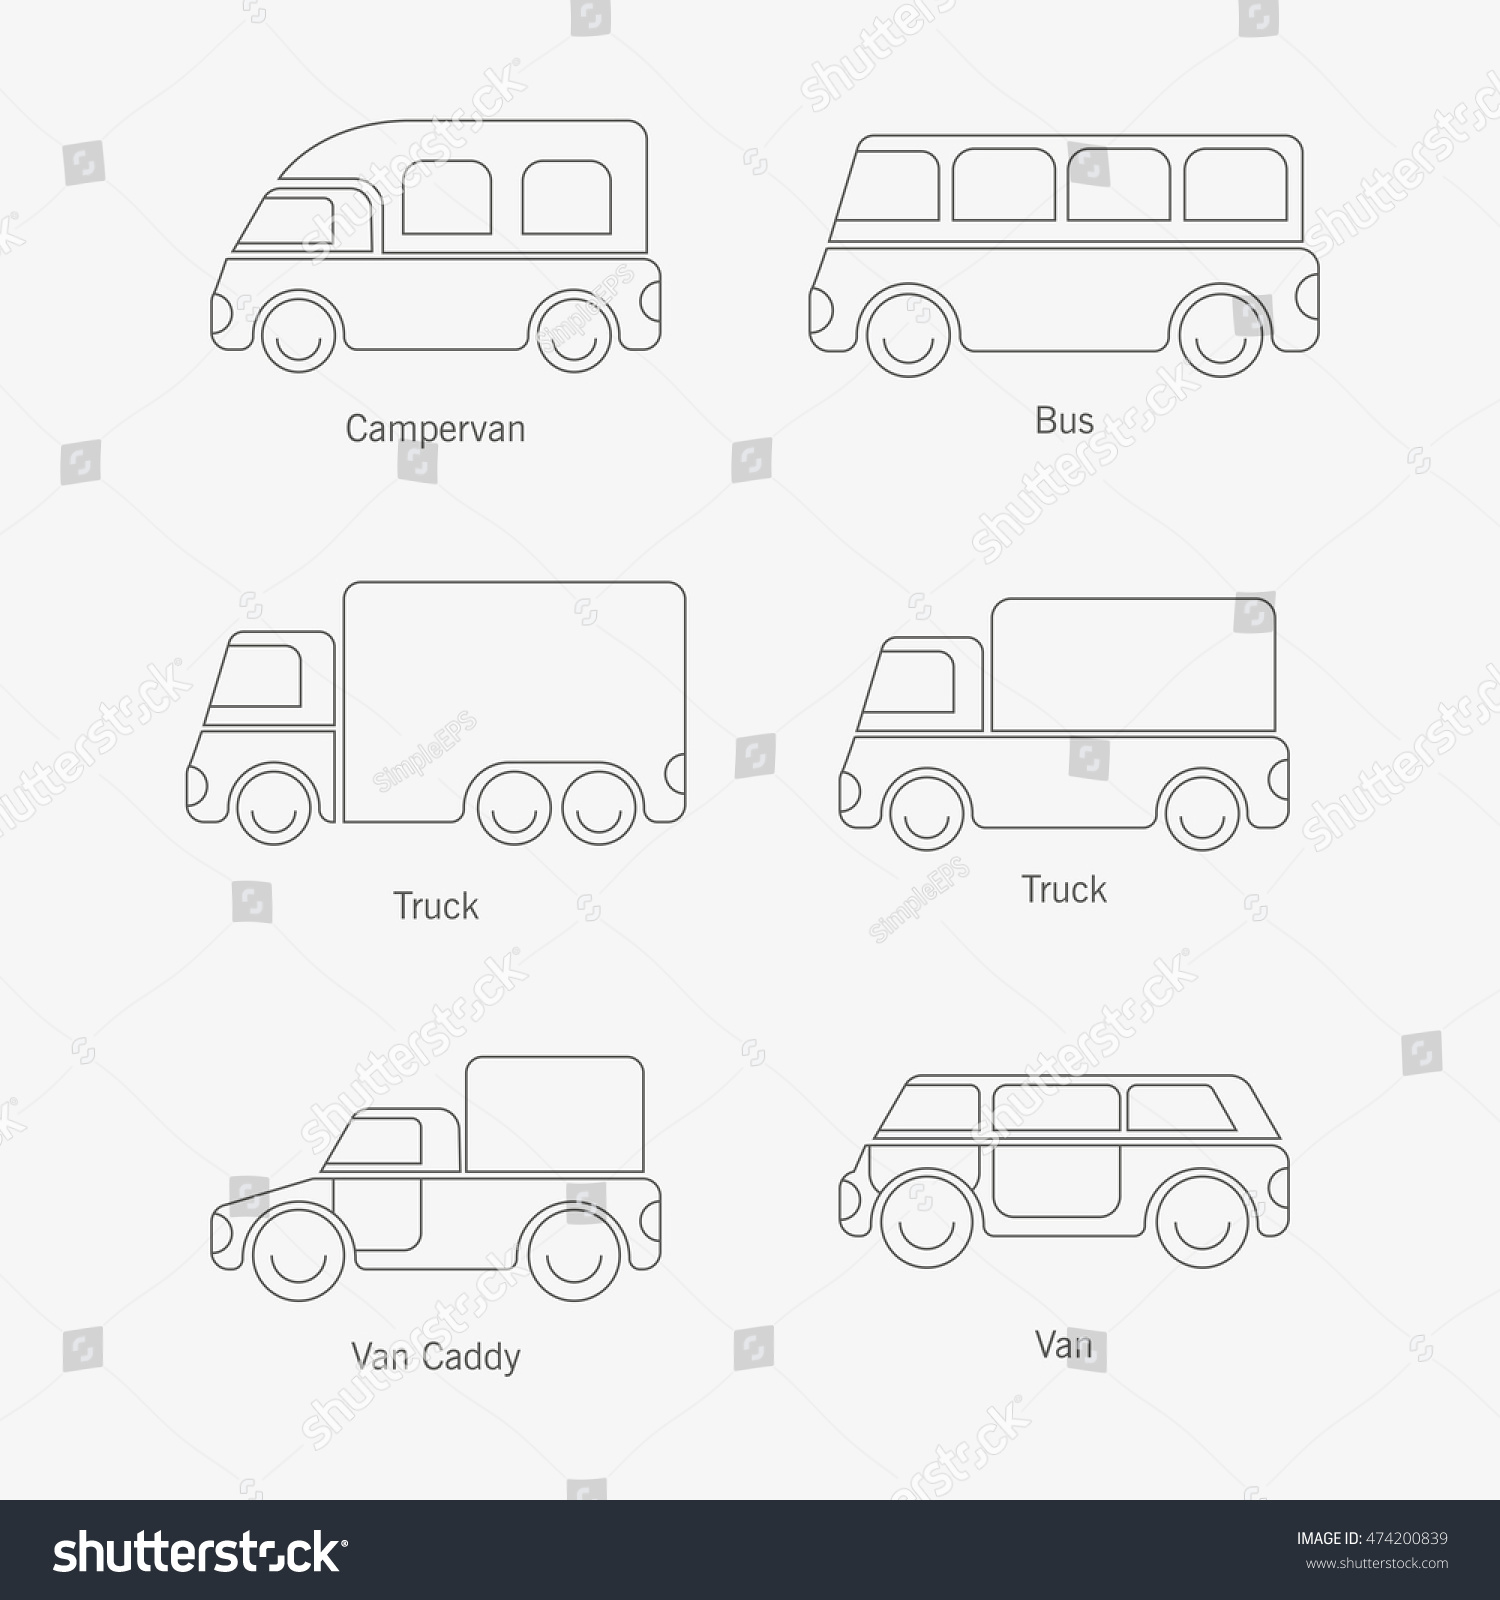 simplified illustration vehicle material presentations